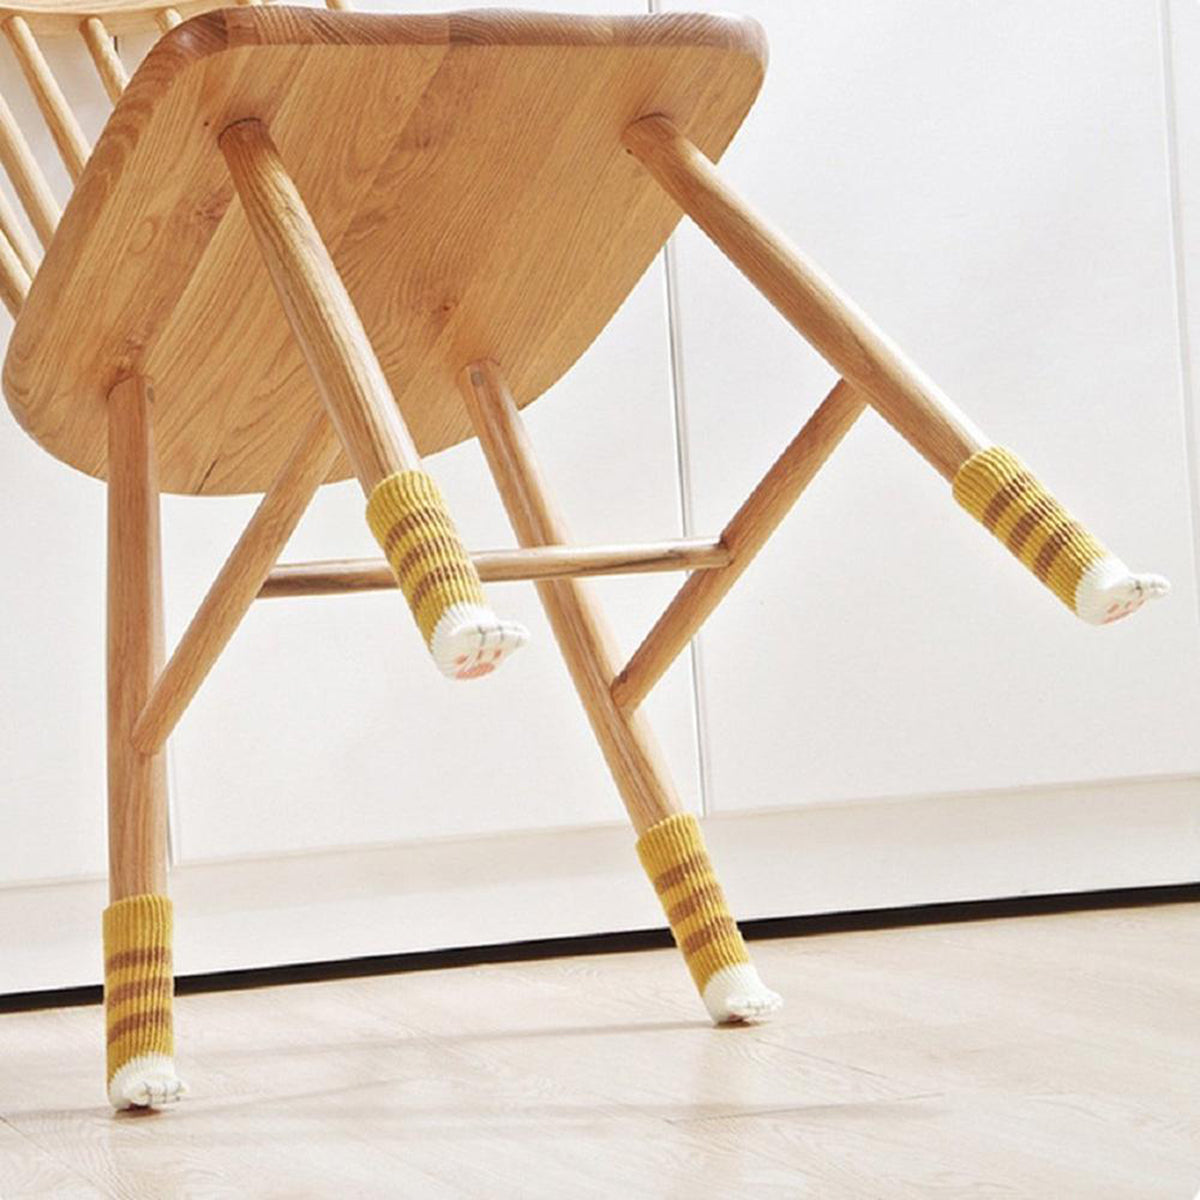 Floor Protection Chair Leg Socks